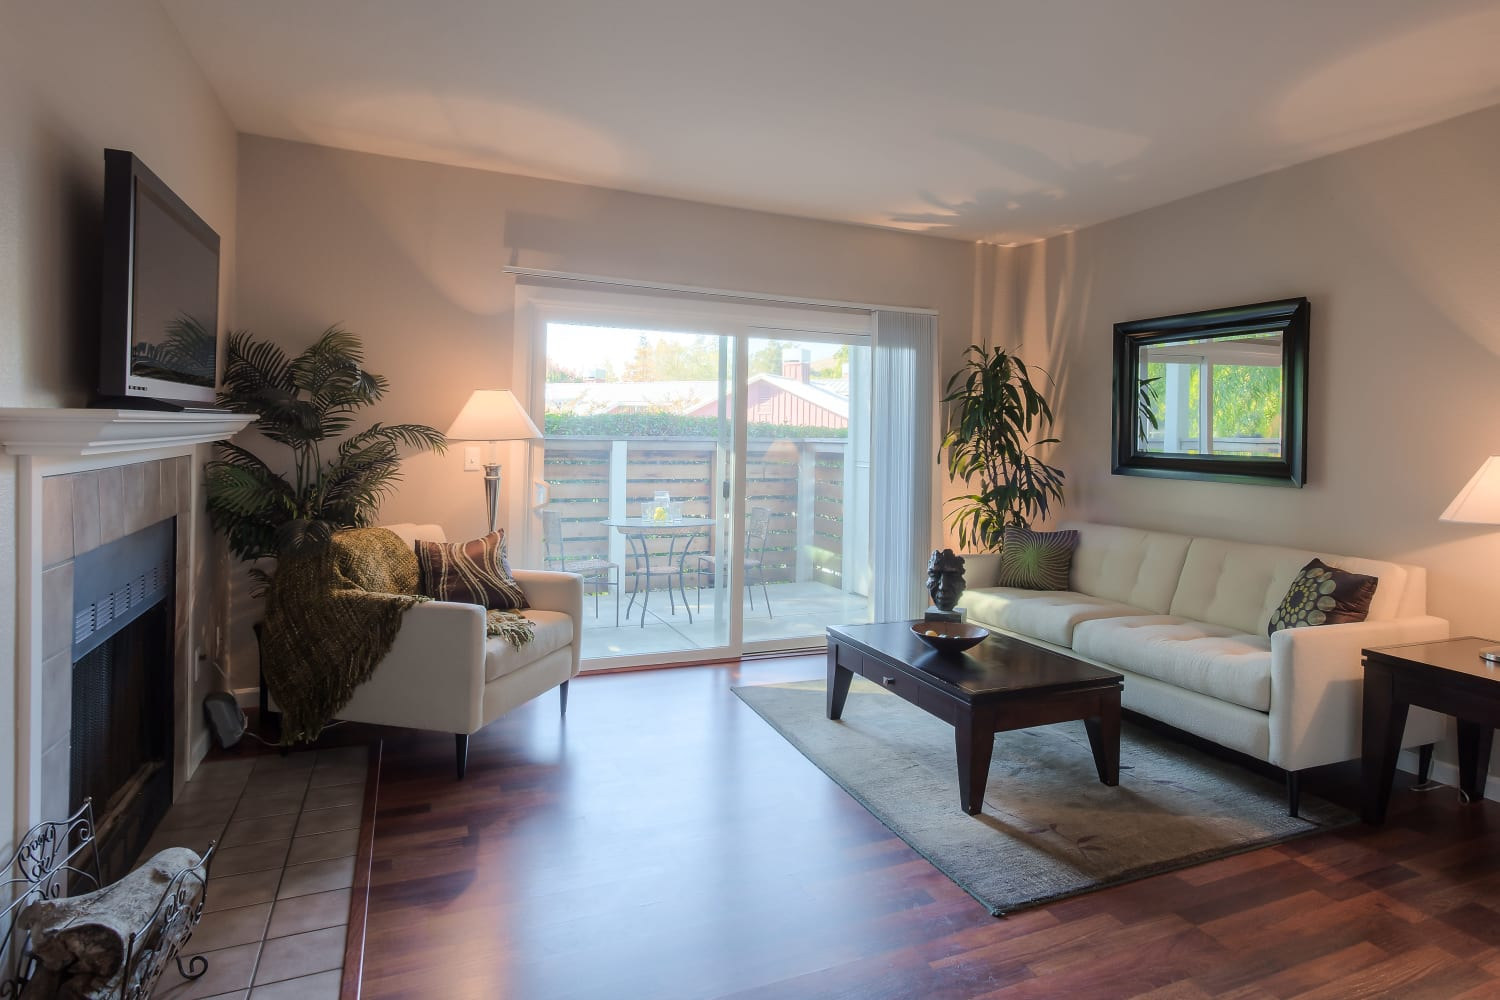 Cotton Wood Apartments in Dublin, California, offer hardwood floors